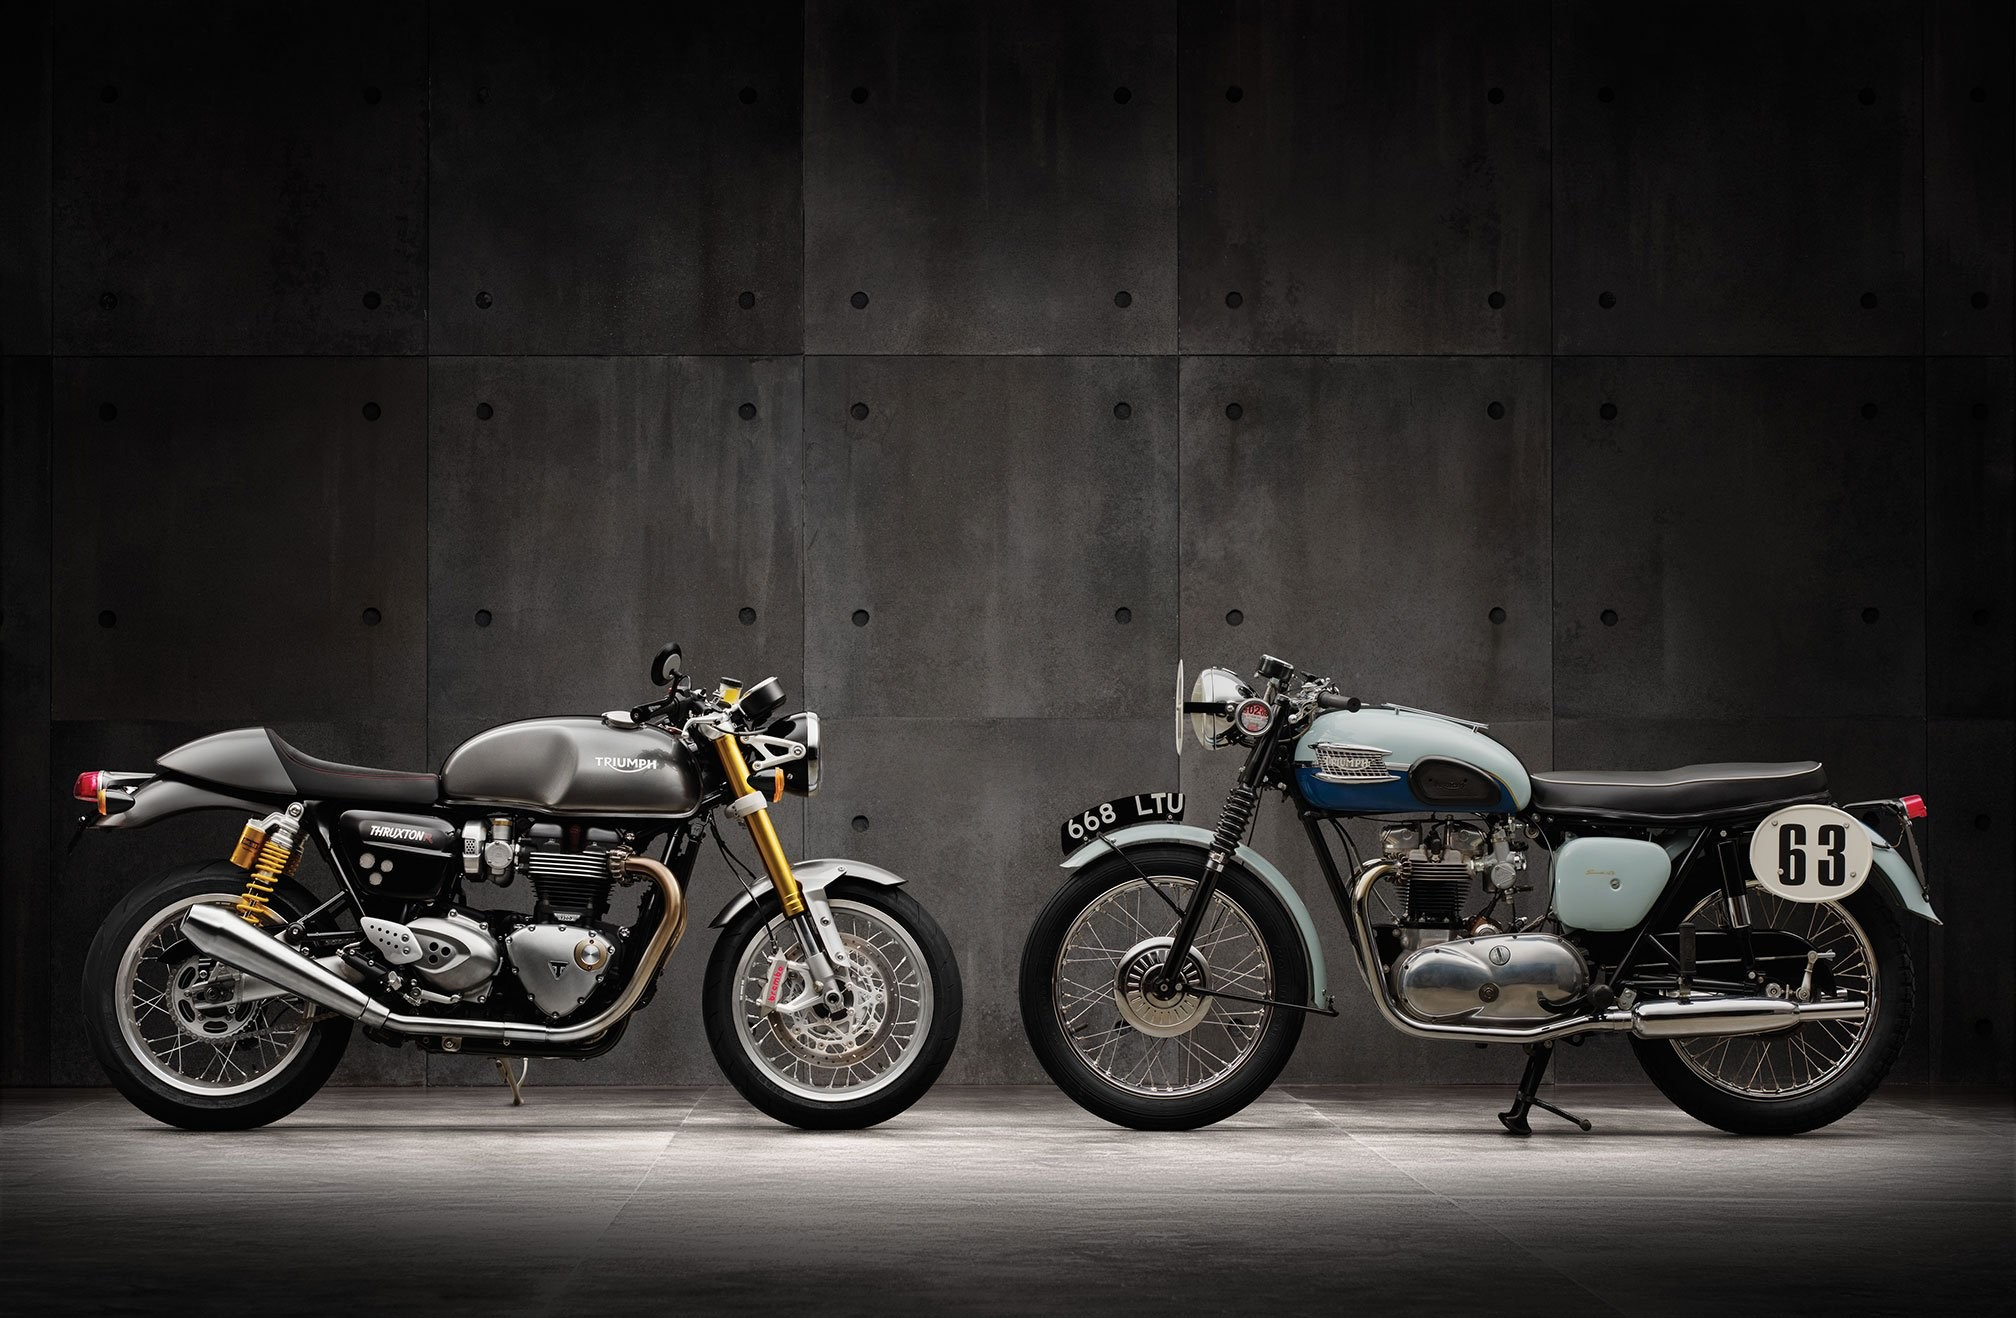 triumph motorcycle wallpaper (80+ images)